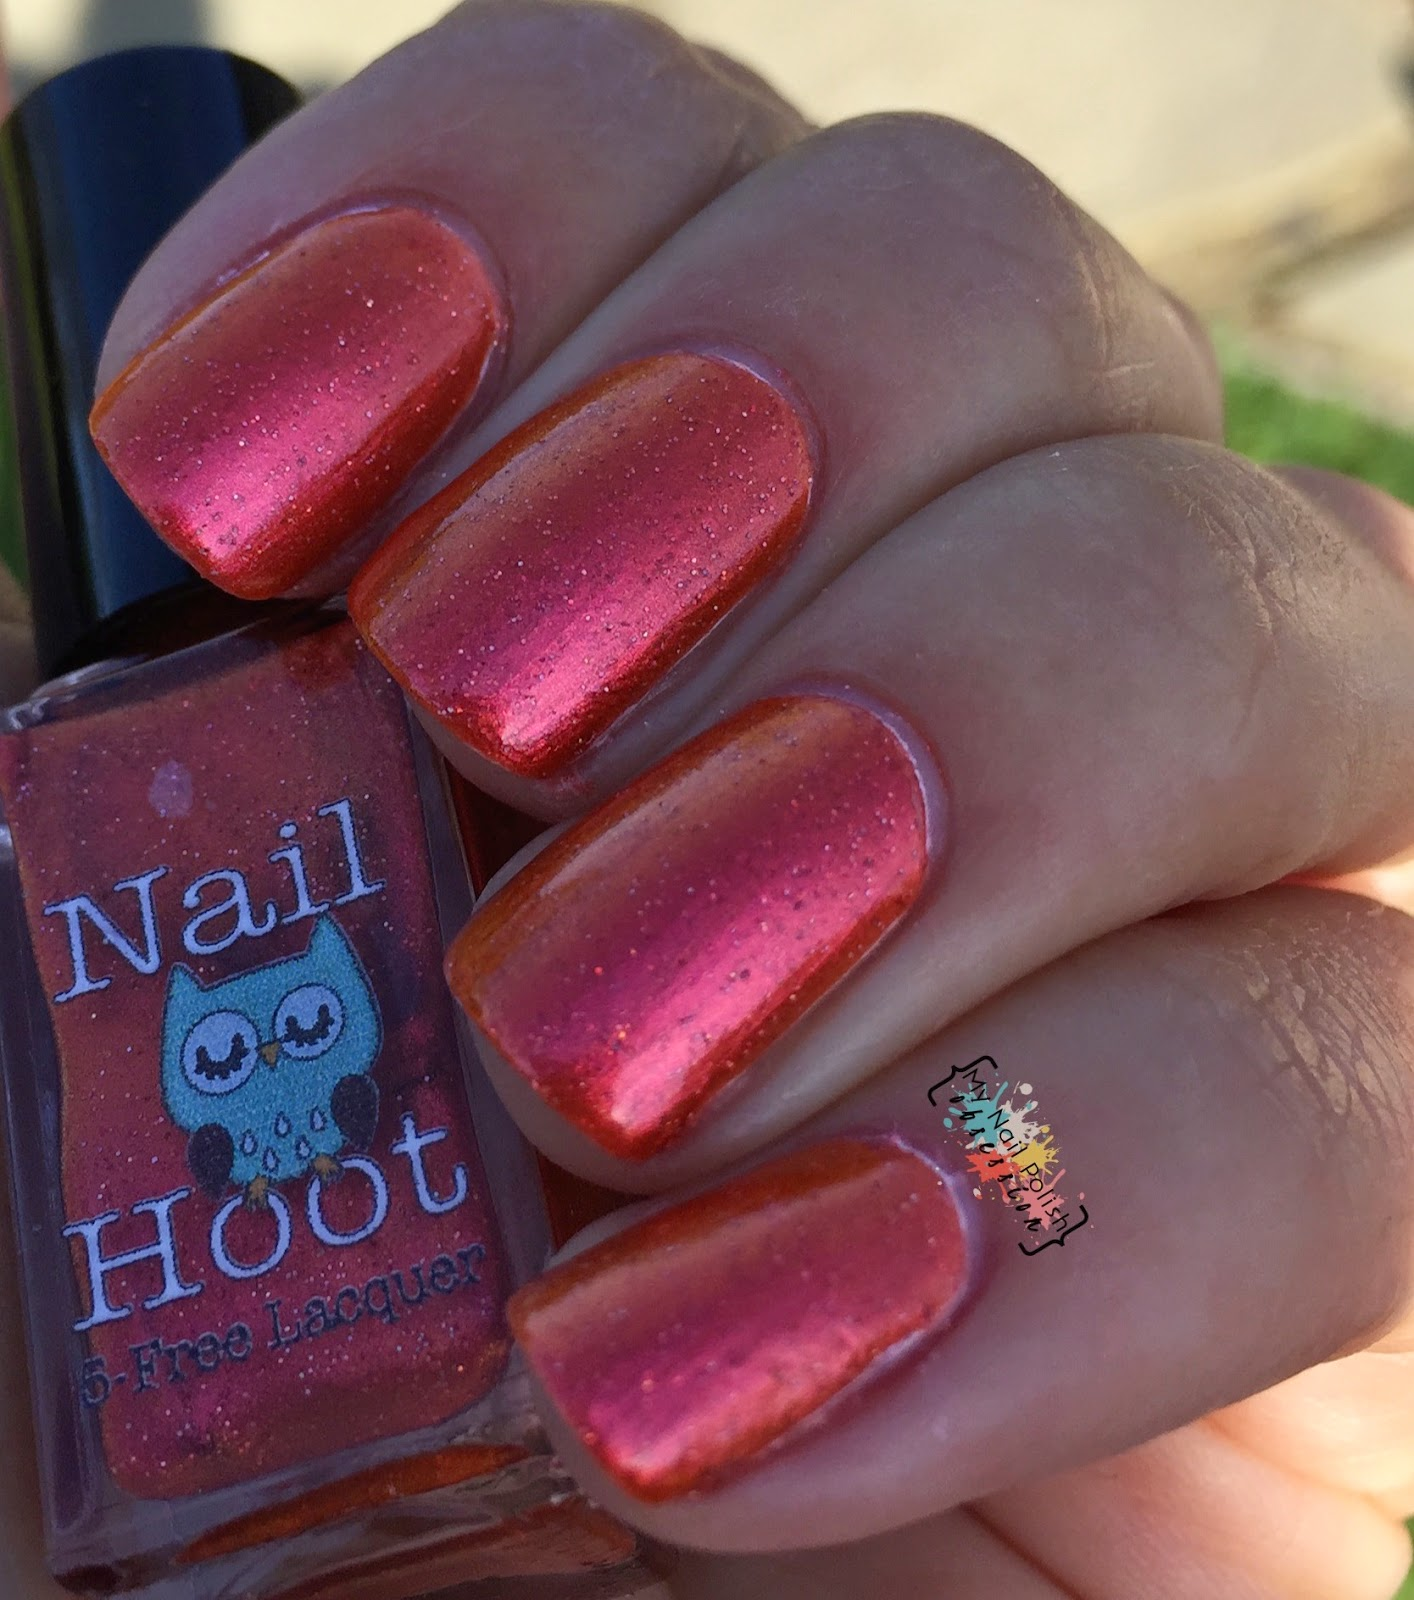 Nail Hoot Lacquers Numbers